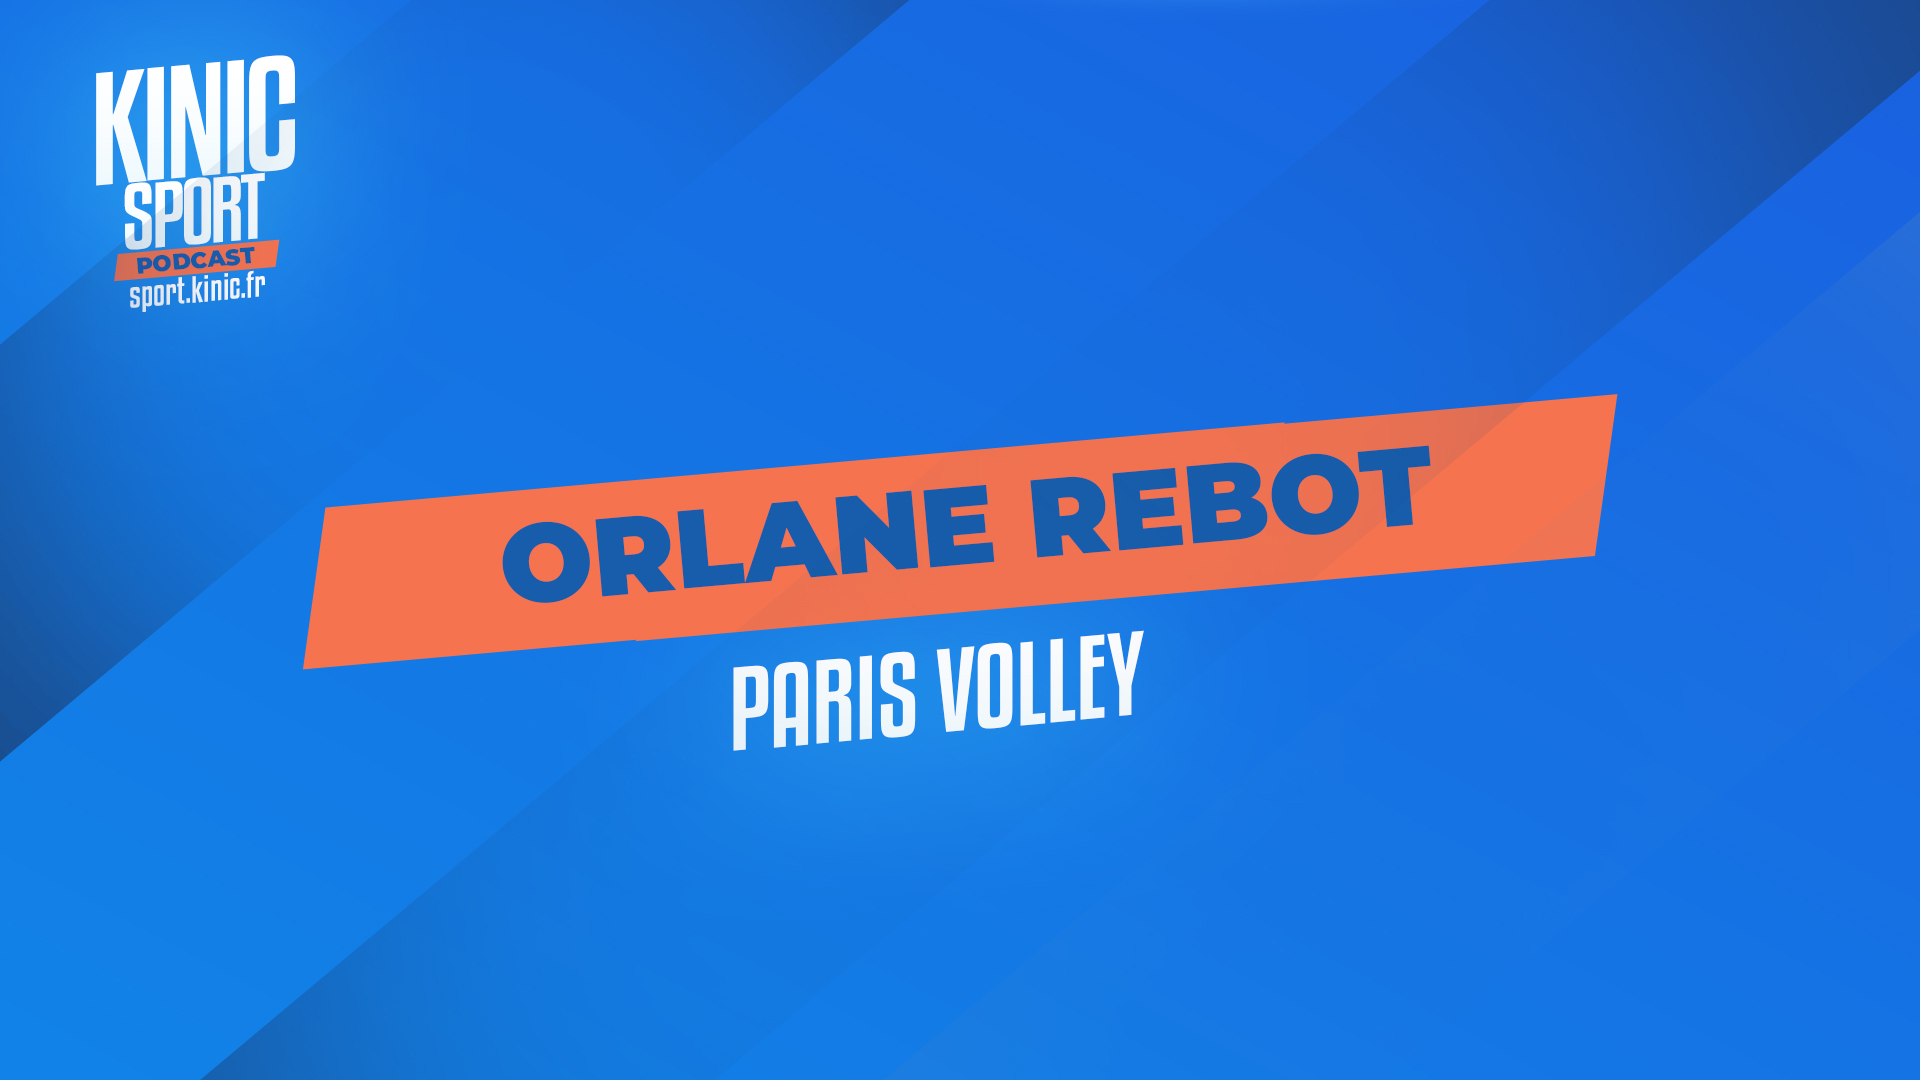 Orlane Rebot du Paris Volley